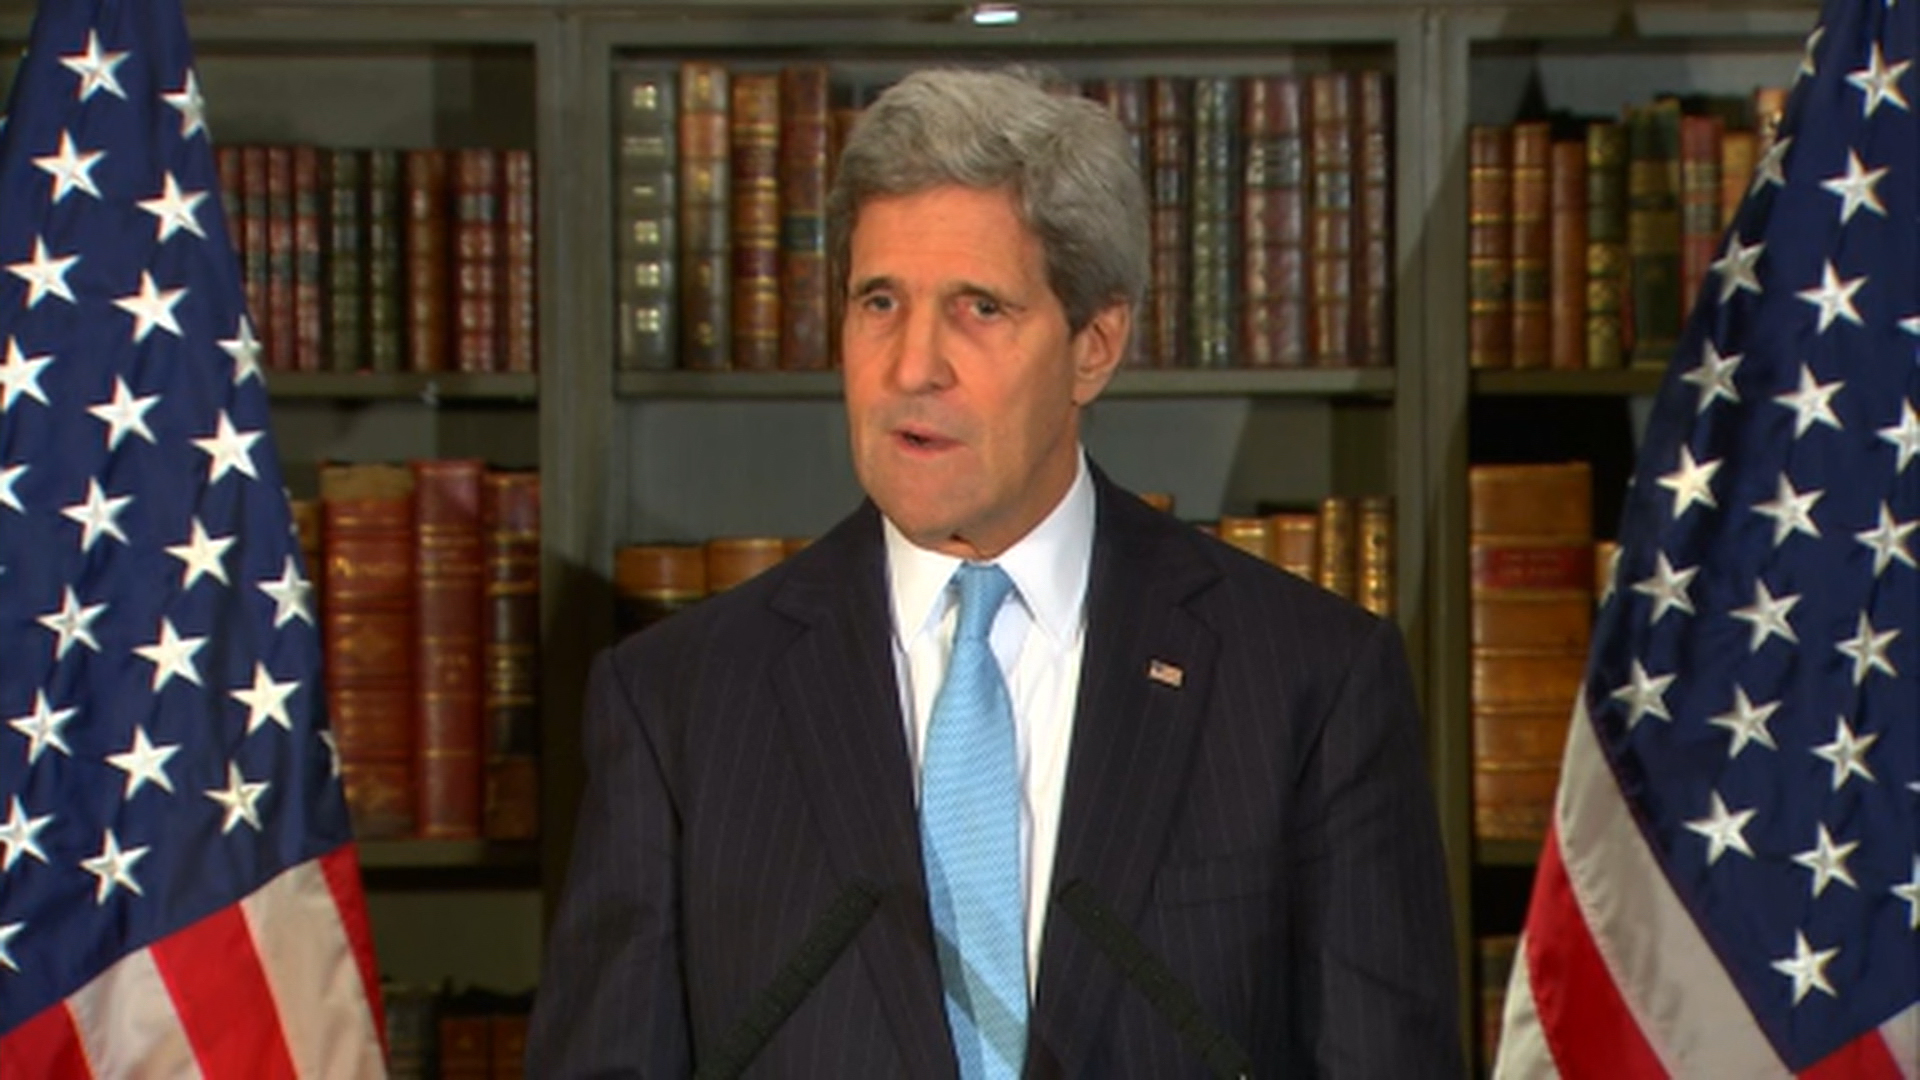 Kerry: 'Conversation with Lavrov was frank'